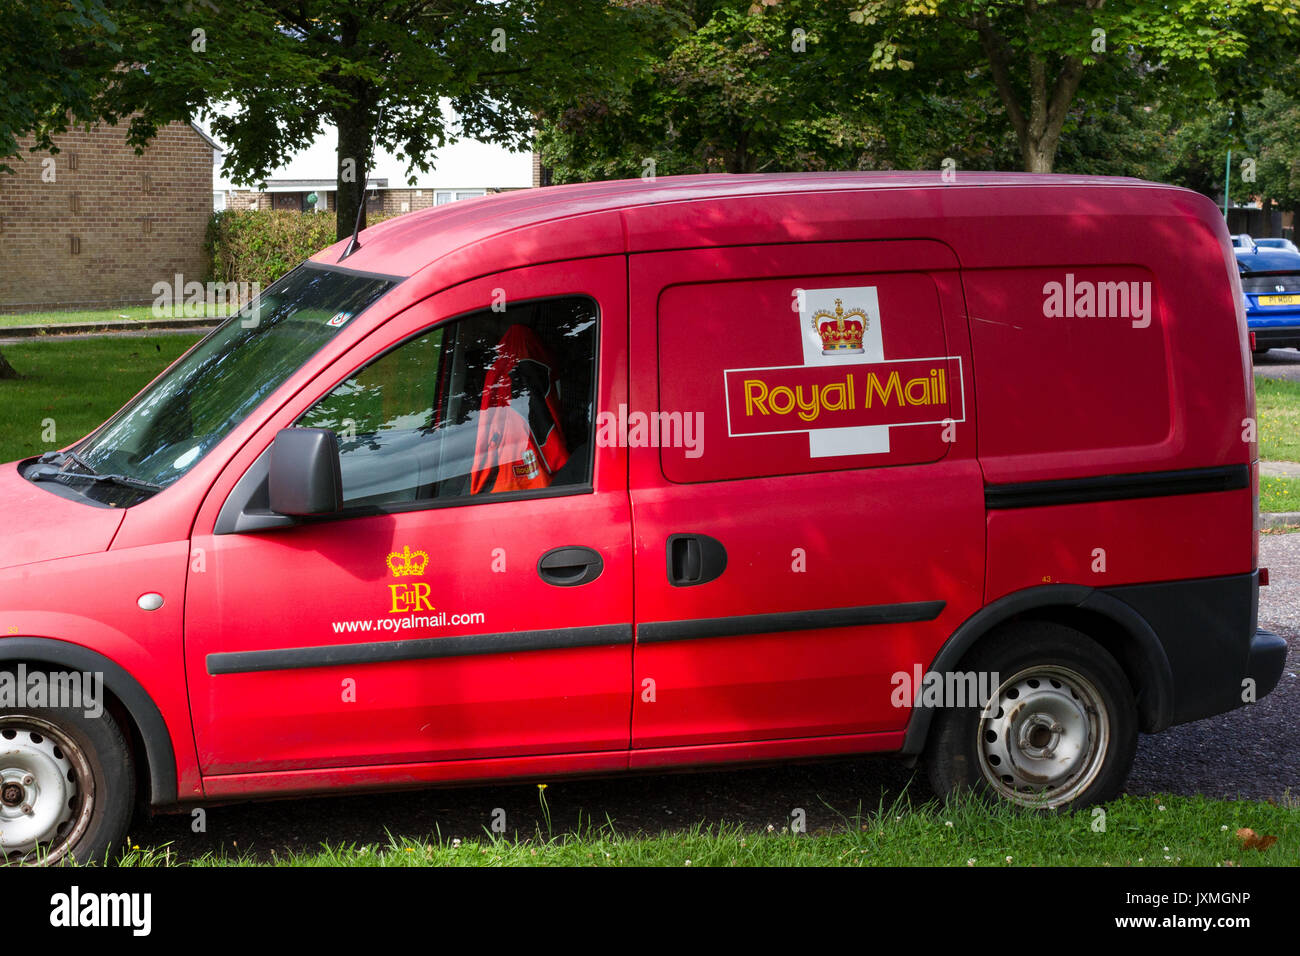 f826380ea64075 Royal Mail postal delivery van parked in a residential area - Stock Image